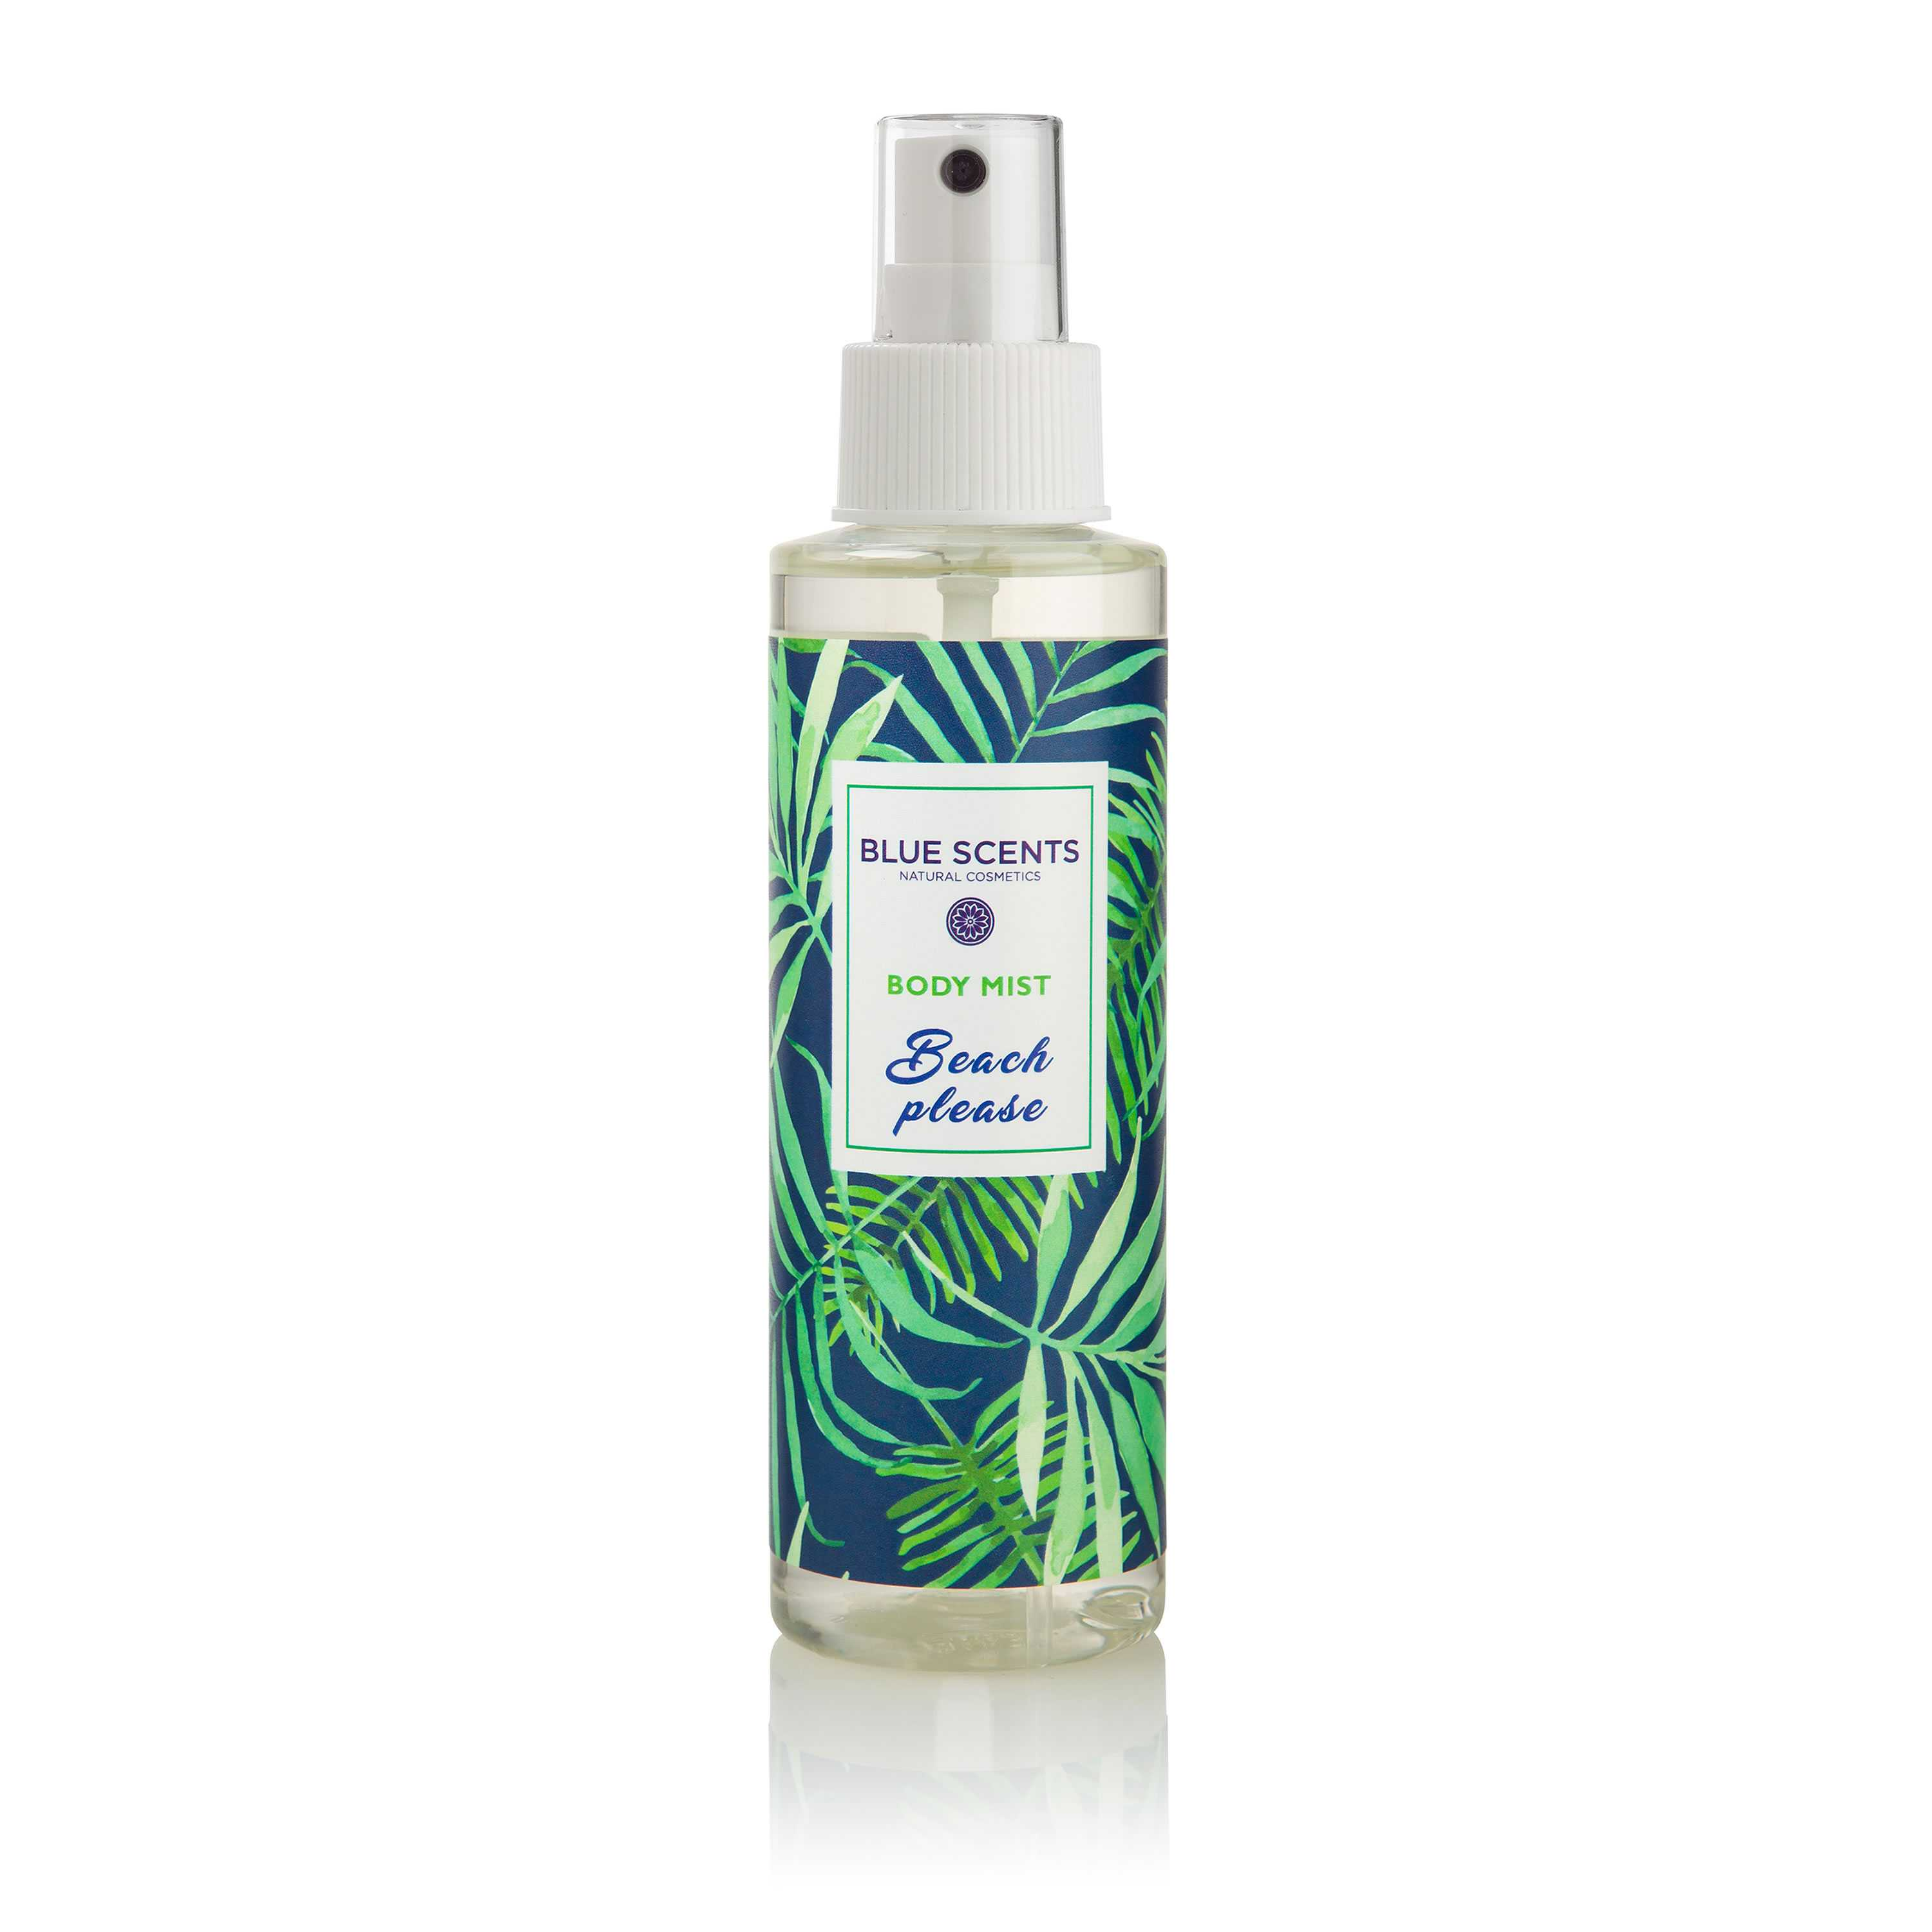 Coco Make It Yours BODY MIST BEACH PLEASE - BLUE SCENTS